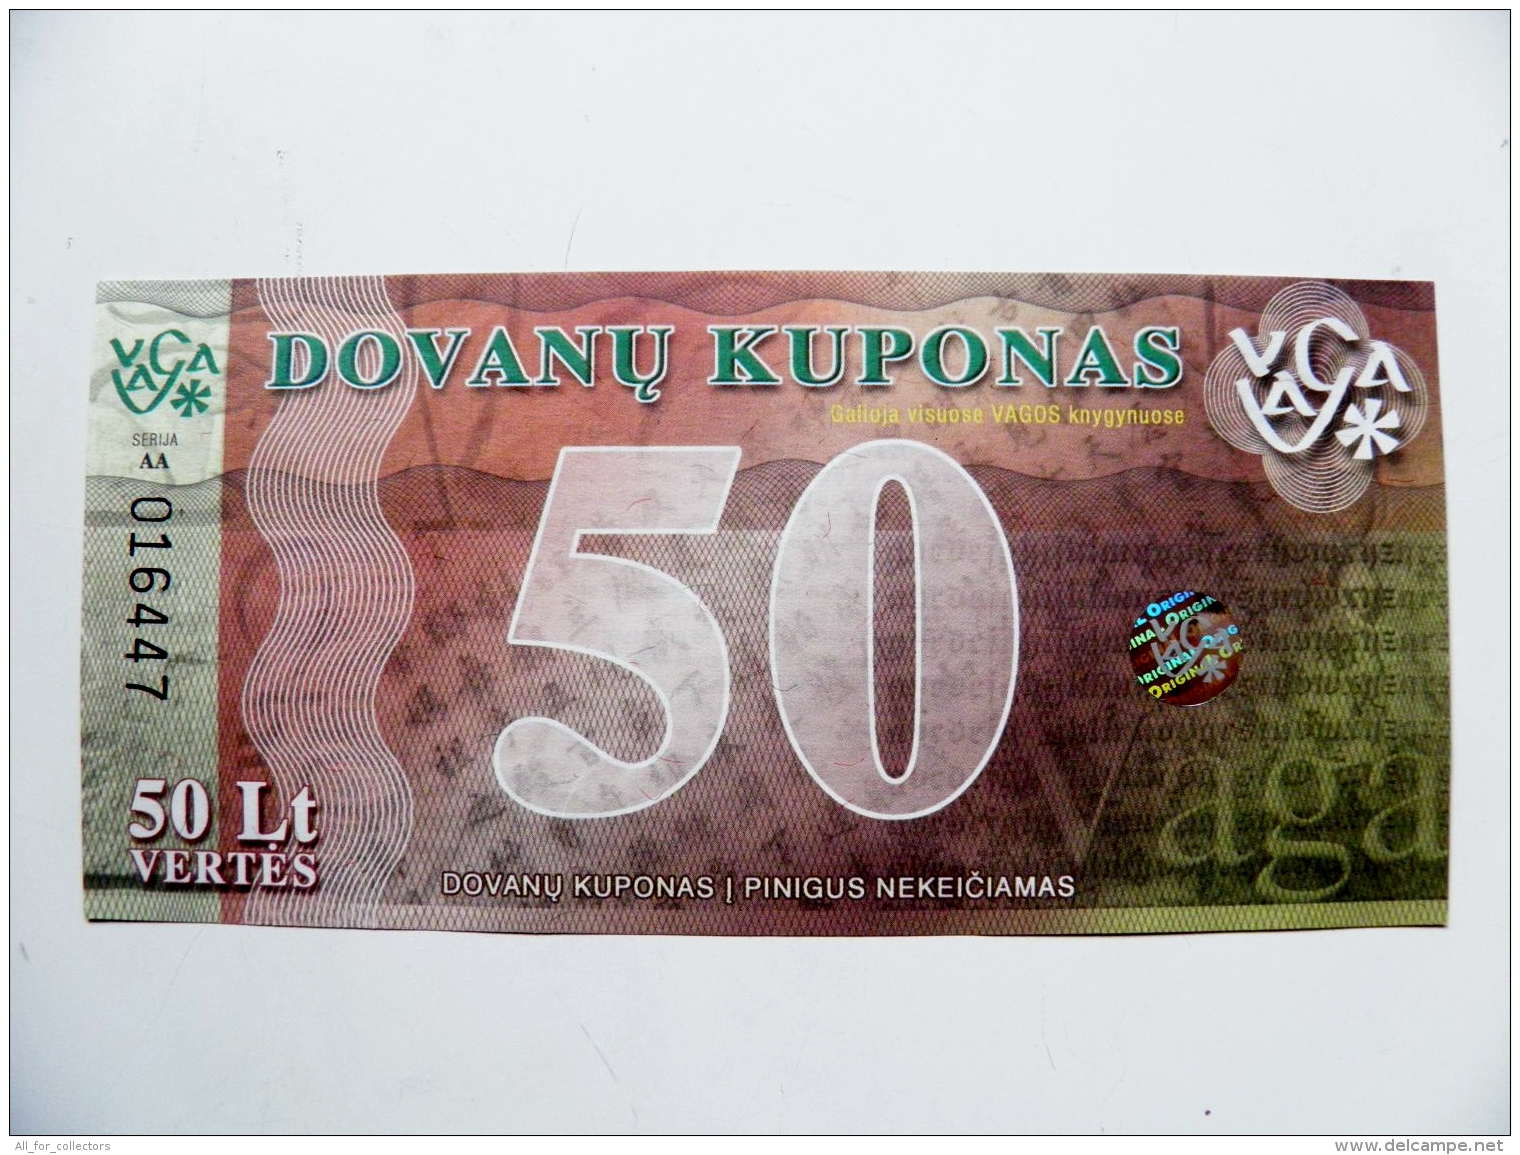 Uns Banknote From Lithuania 2008 50 Lt. Gift Voucher At The Bookstore Hologram Vaga - Lituanie